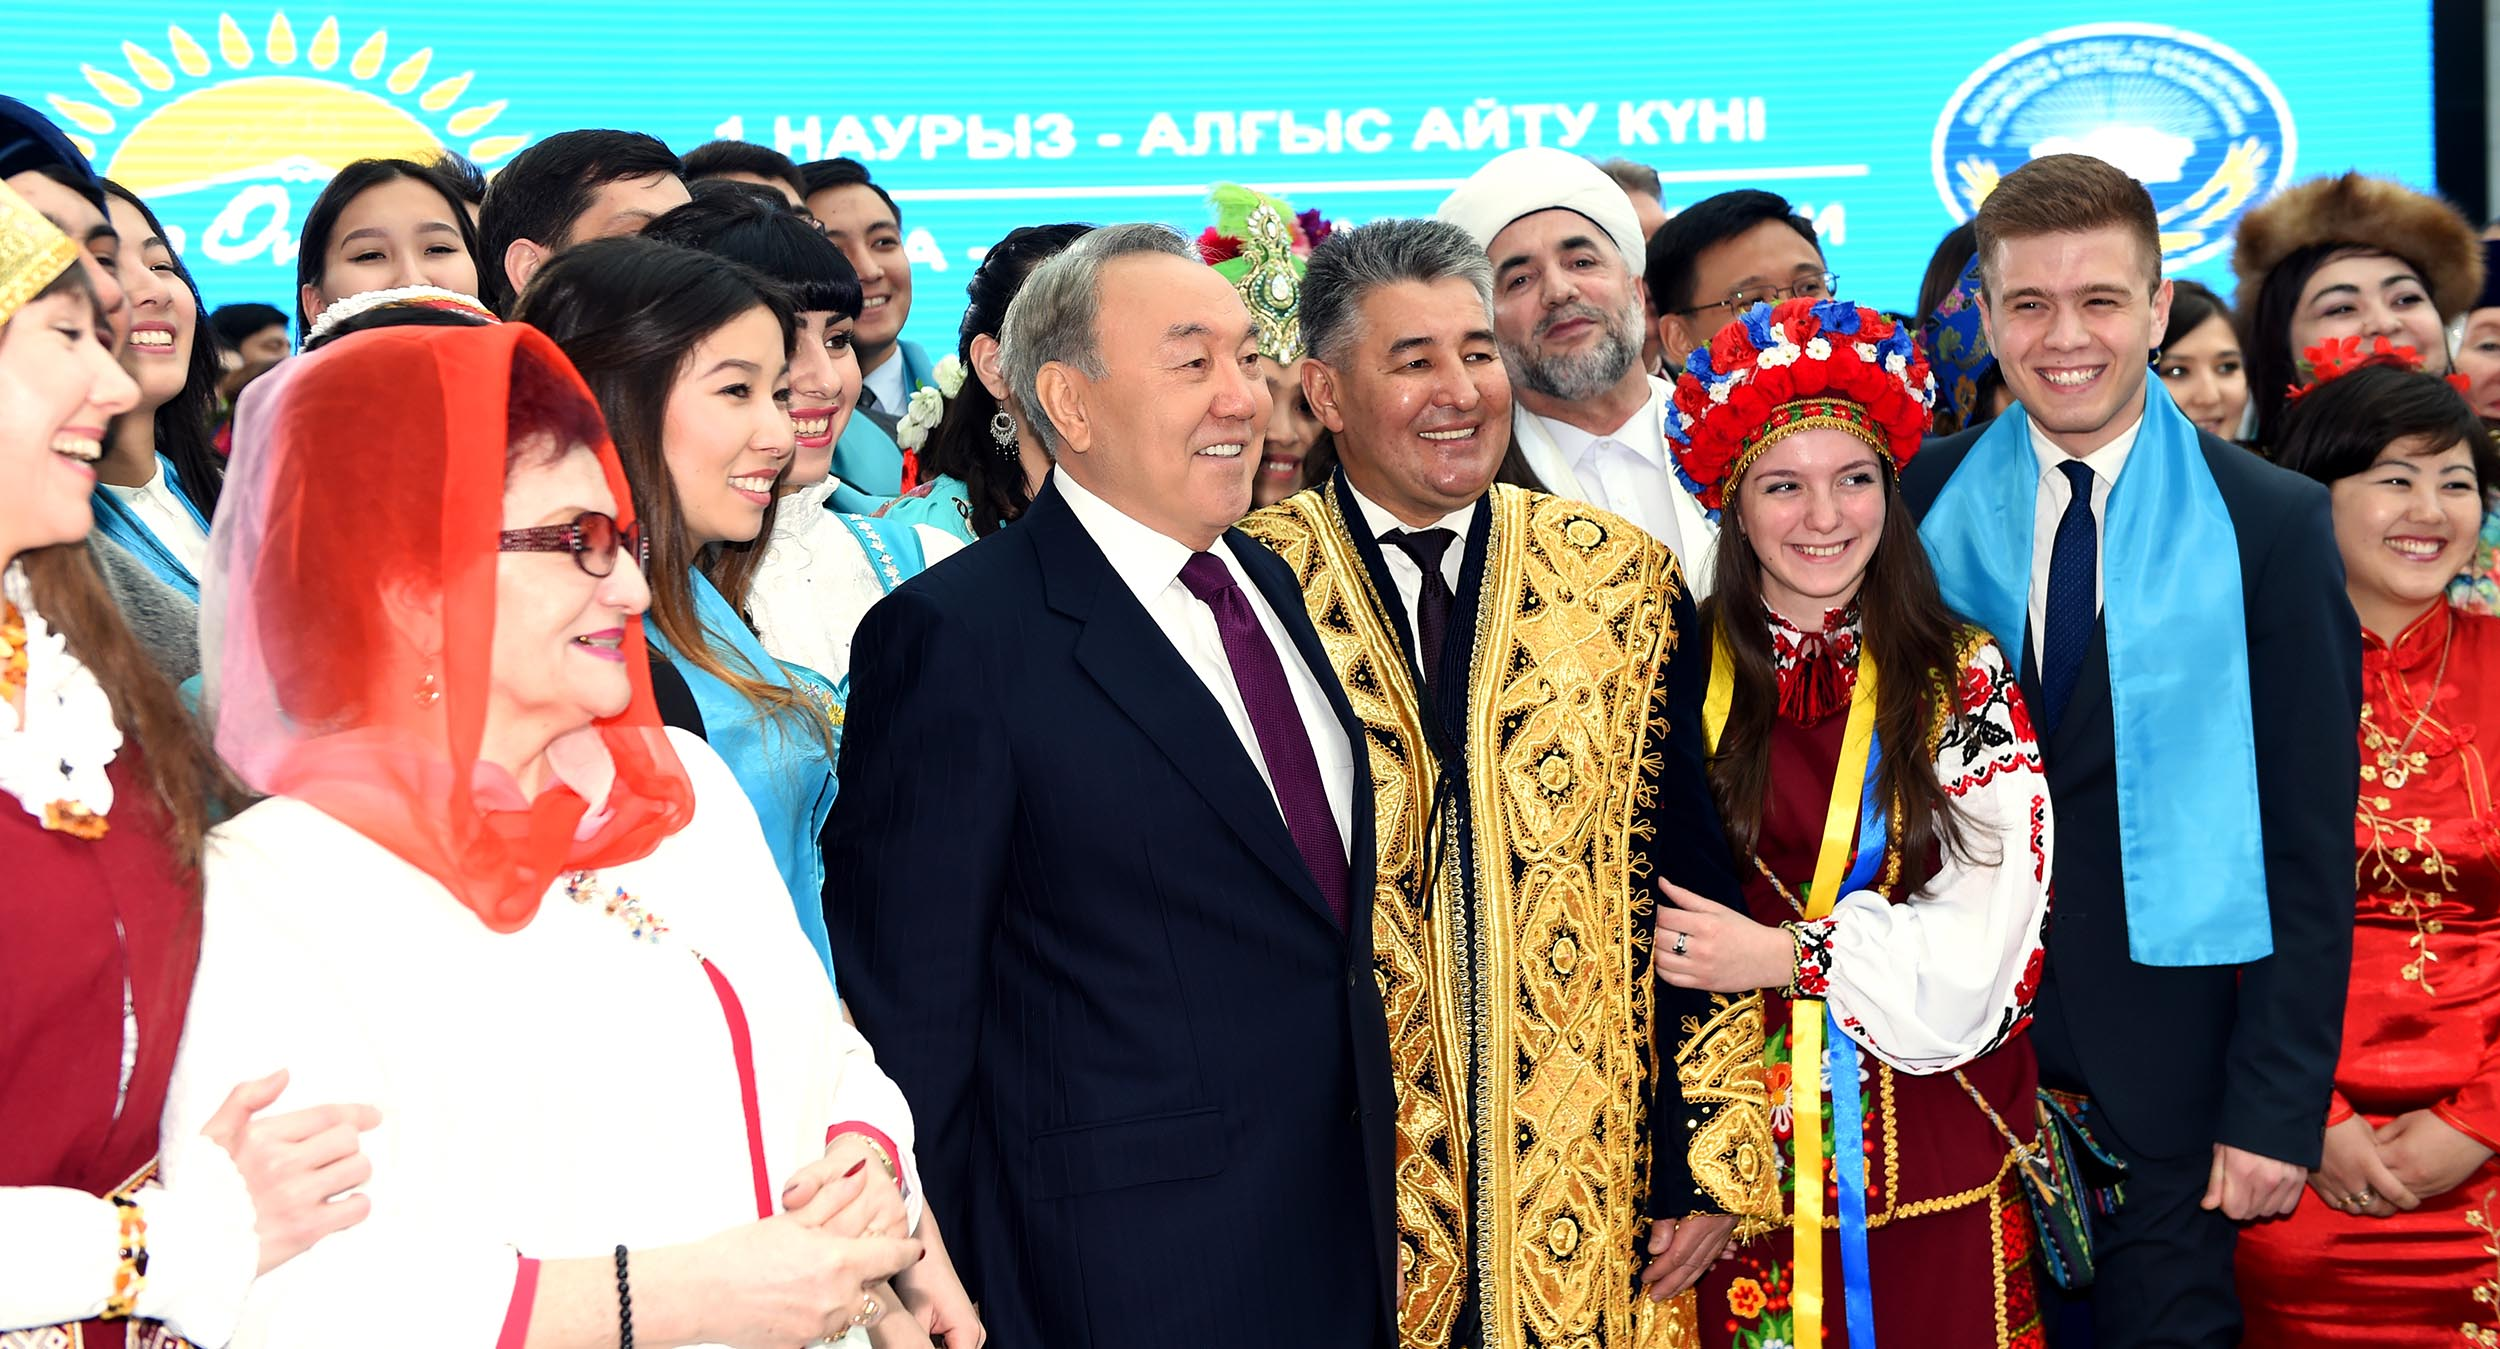 People: Nazarbayev Congratulates Kazakh People On Day Of Gratitude